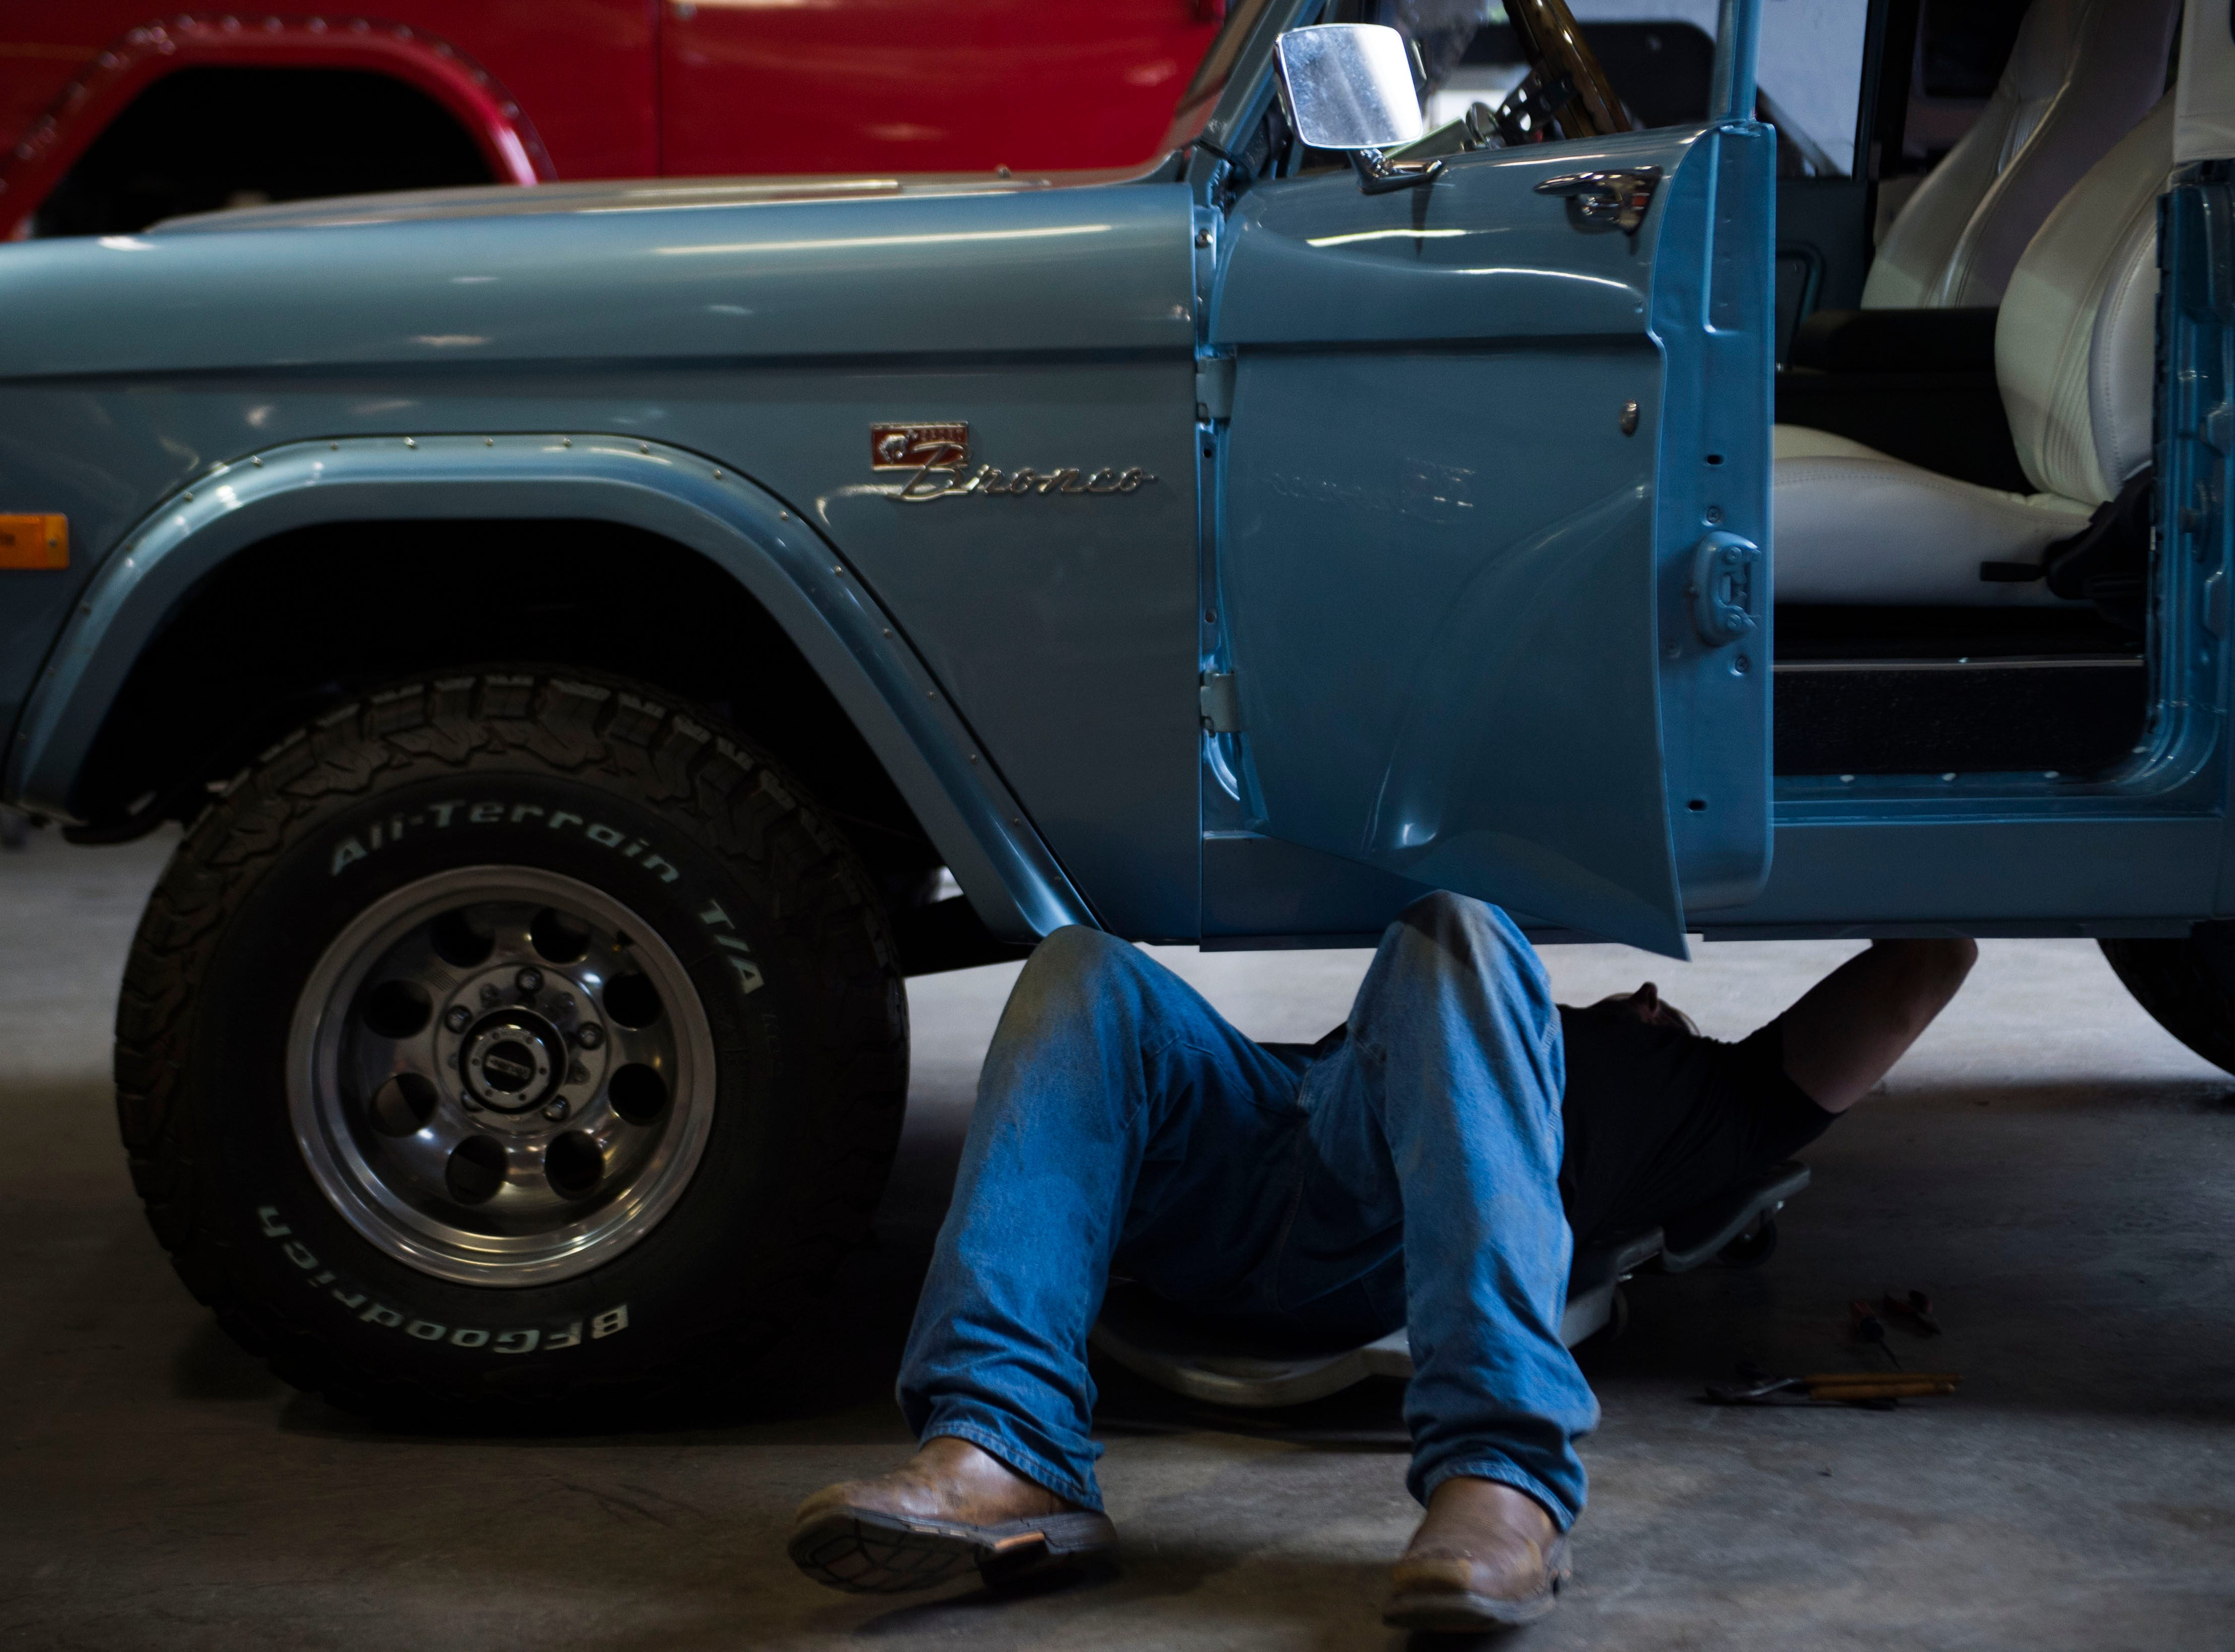 RJ Vickers works under a Bronco at Krawlers Edge, which specializes in Ford Bronco restoration, in Seymour on Friday, Aug. 31, 2018.